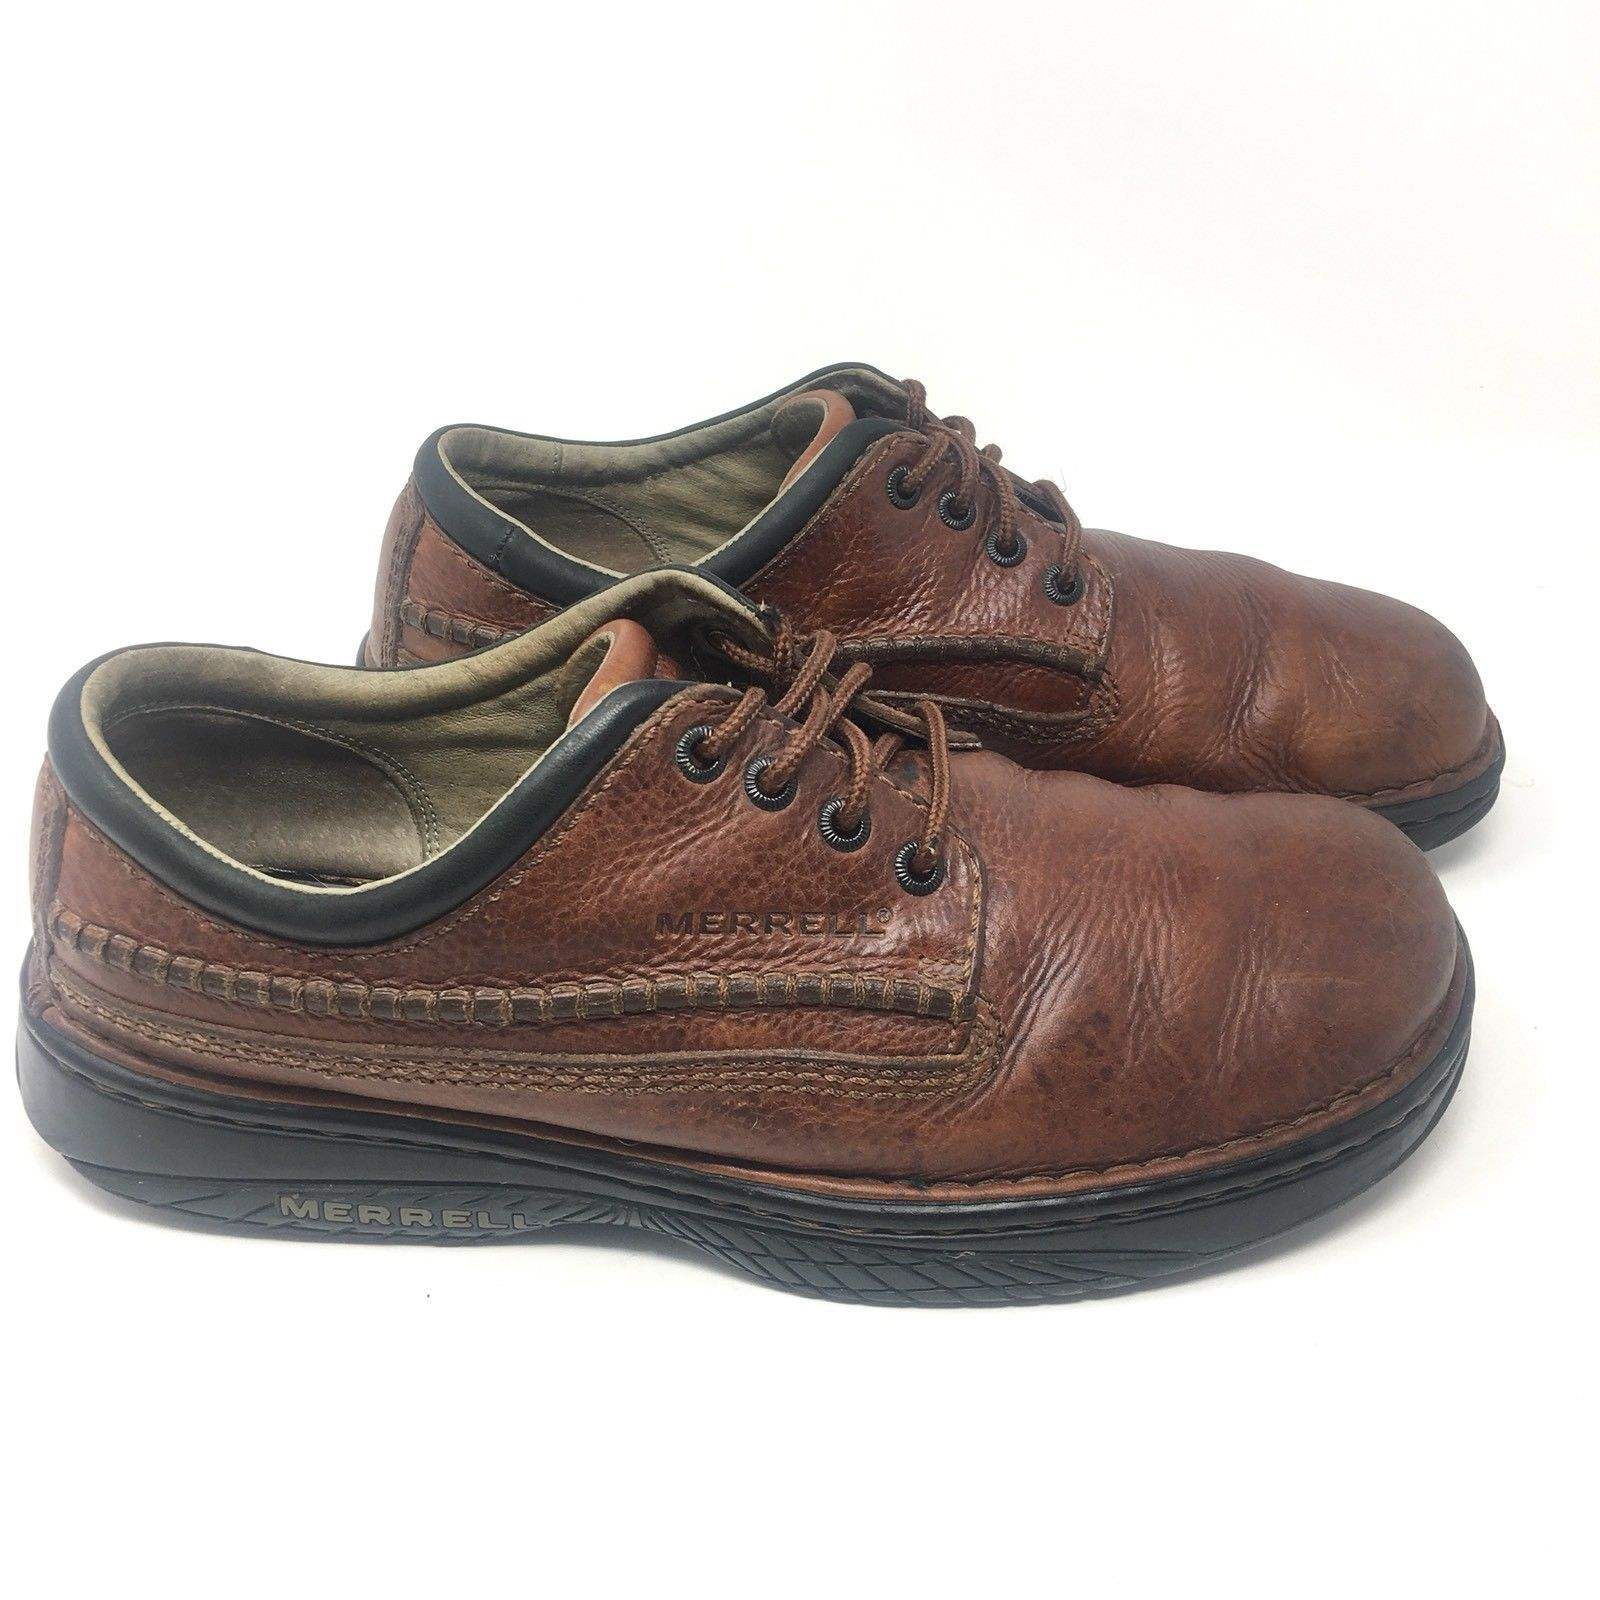 9b440747a987 Merrell World Leader Oxford Shoes US 9.5 M and 50 similar items